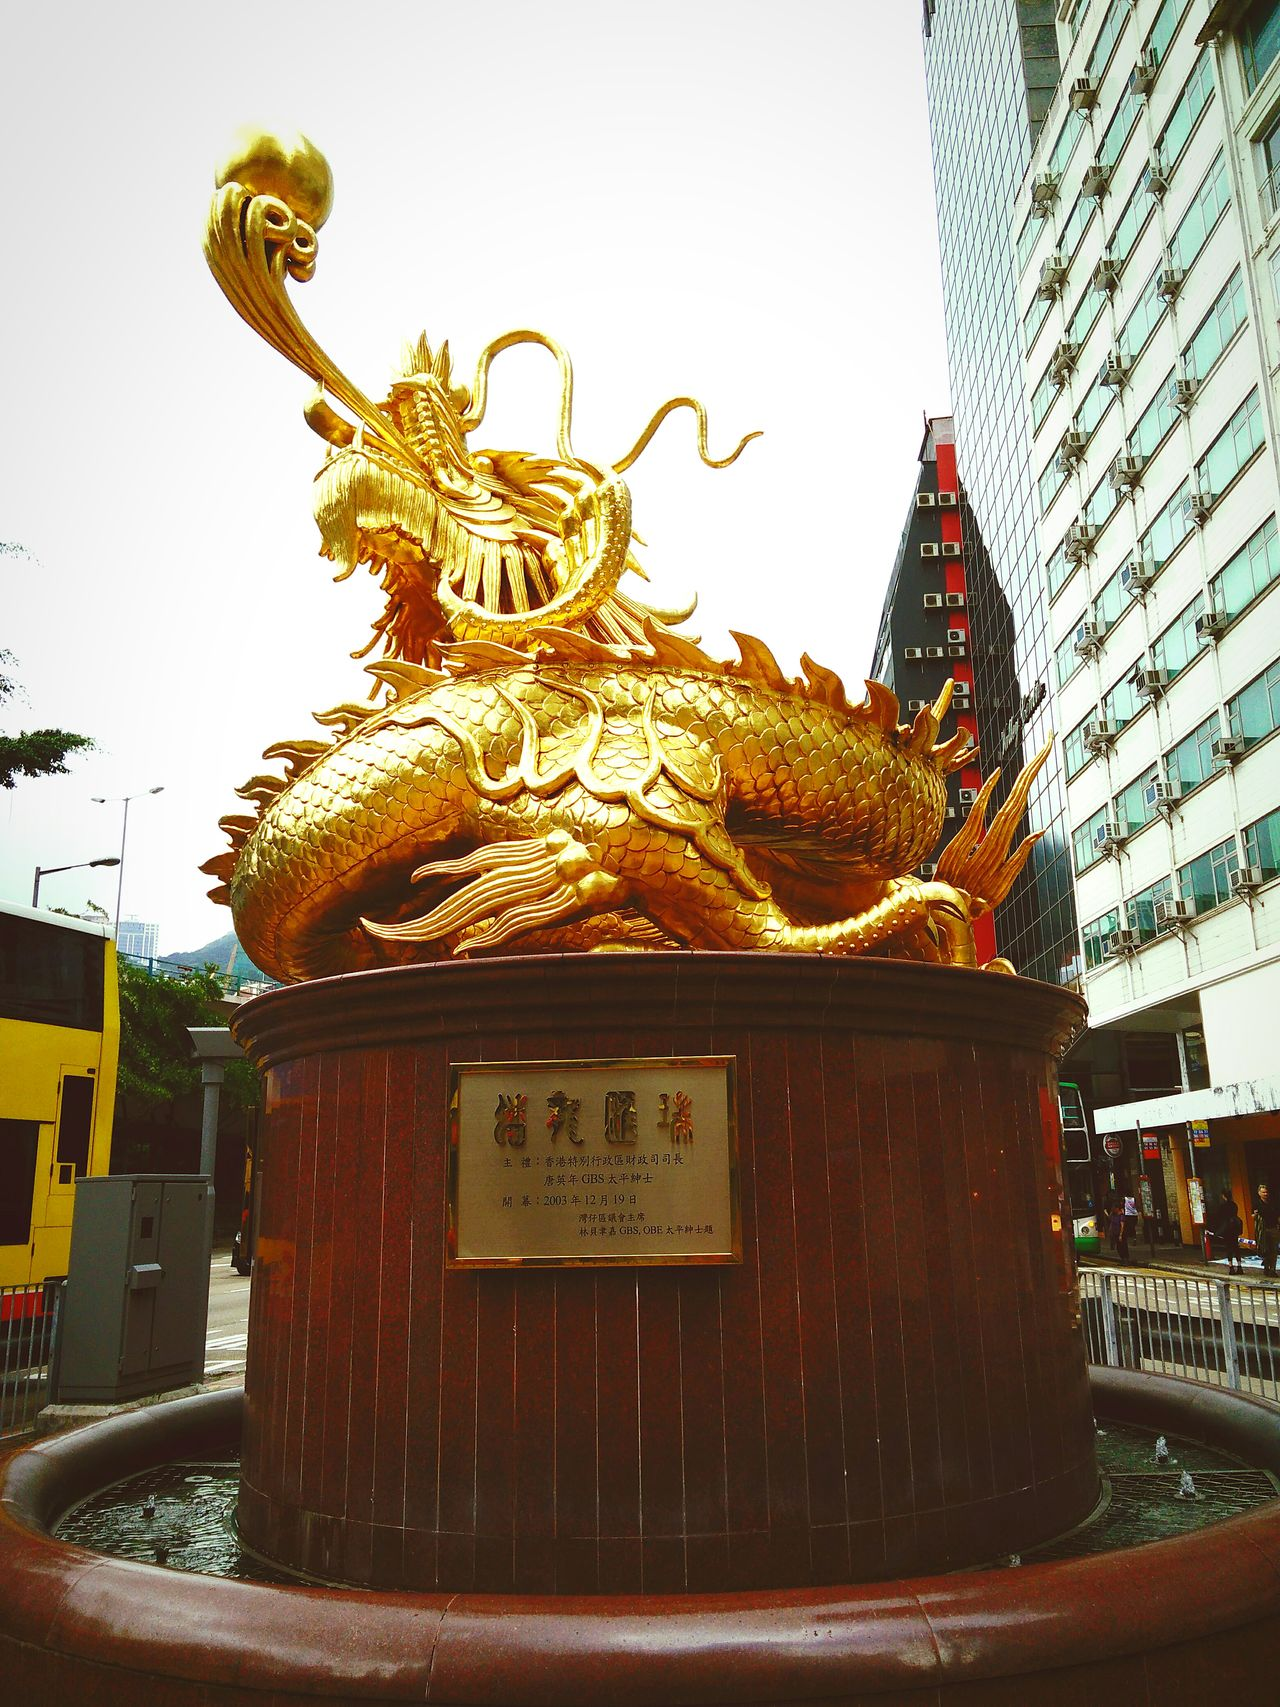 Bumped Into This Gold Dragon In A City May 2016